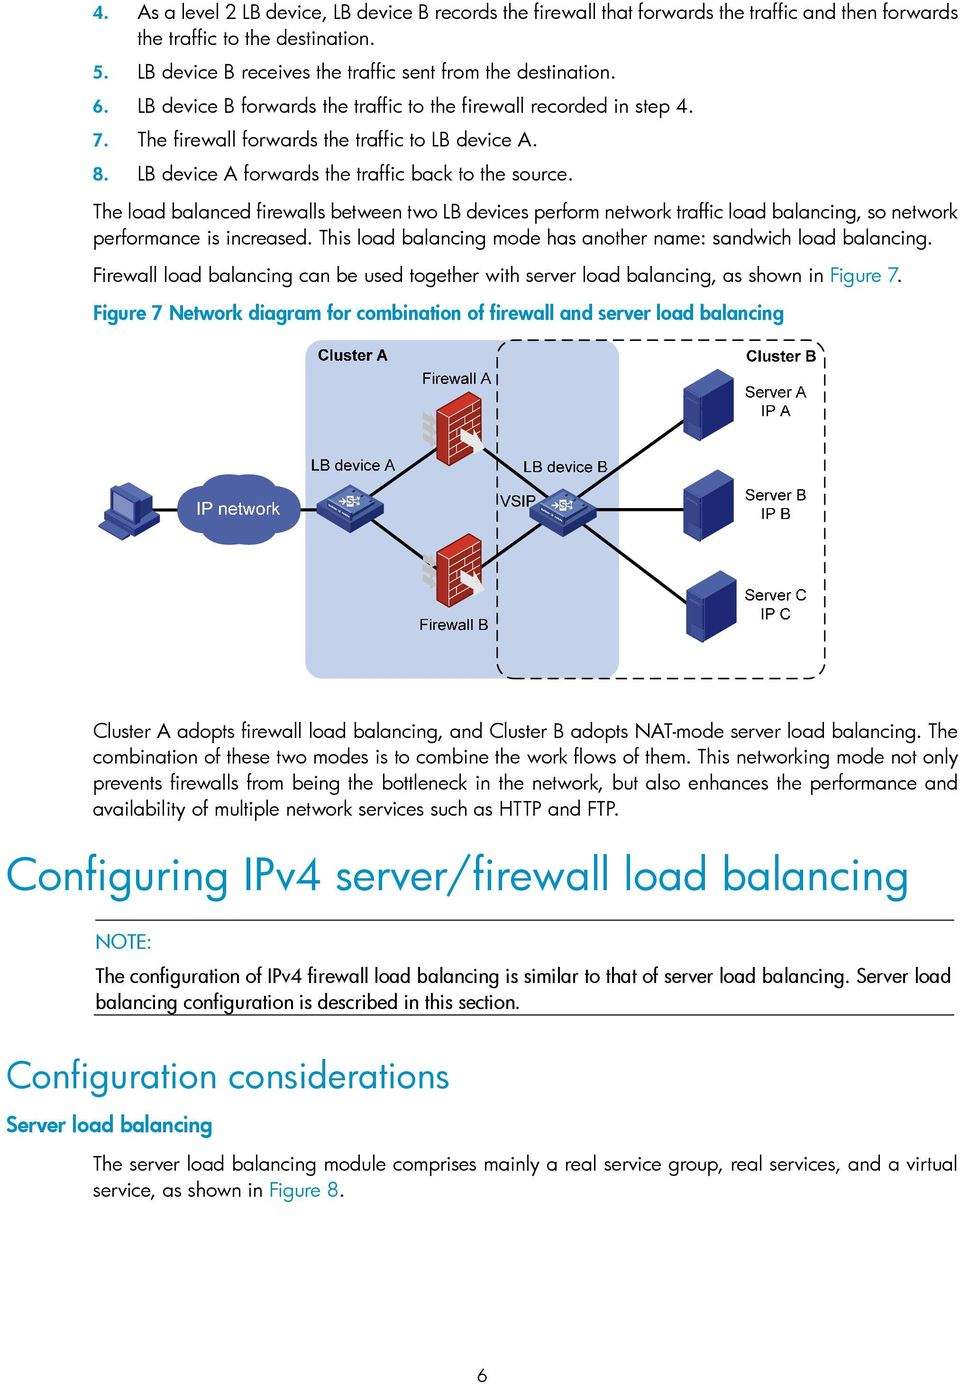 The load balanced firewalls between two LB devices perform network traffic load balancing, so network performance is increased. This load balancing mode has another name: sandwich load balancing.